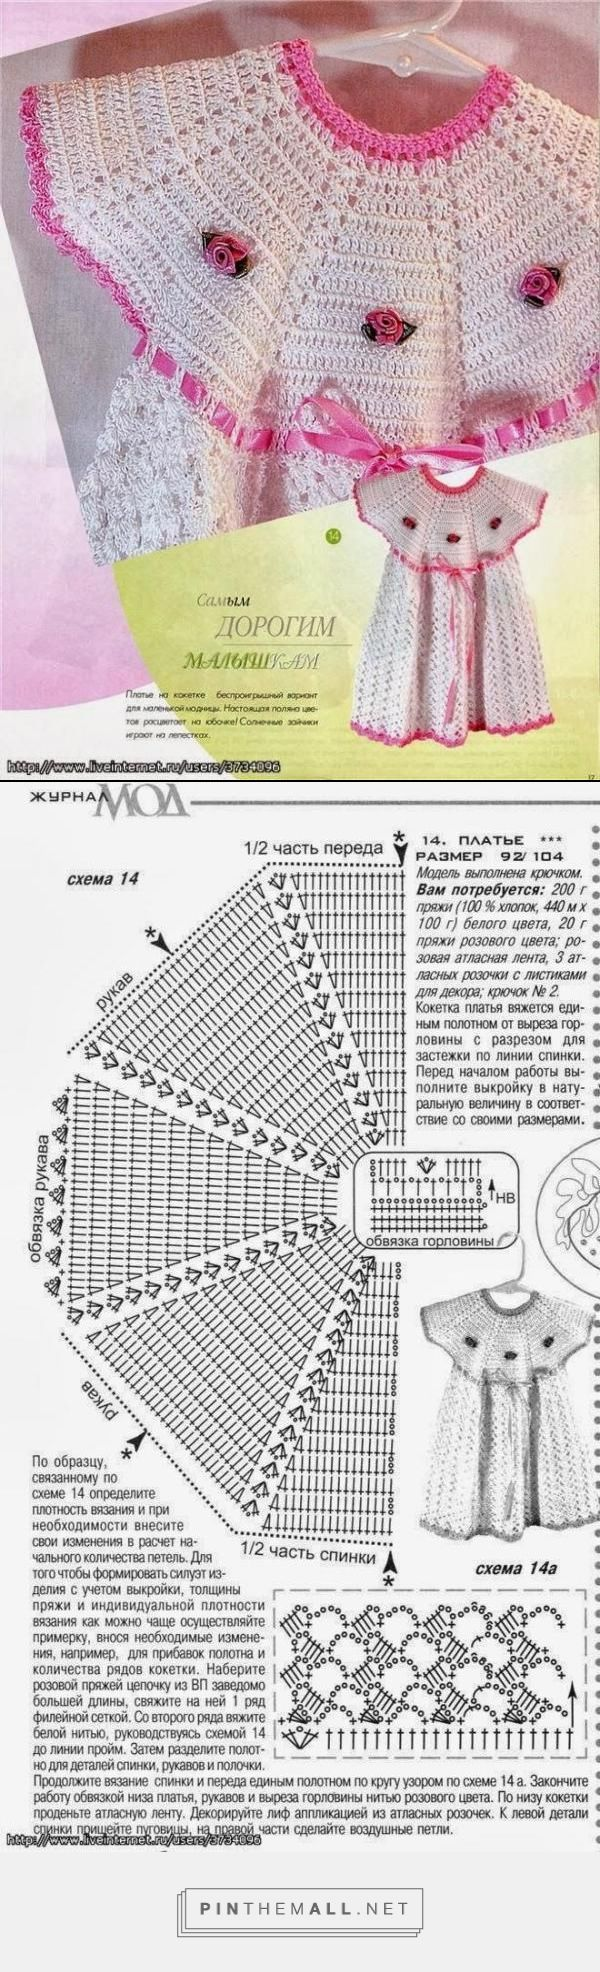 Crochet lace dress for little girl. Chart for octagon-shaped yoke and chart for the lace stitch used on the skirt. ~~